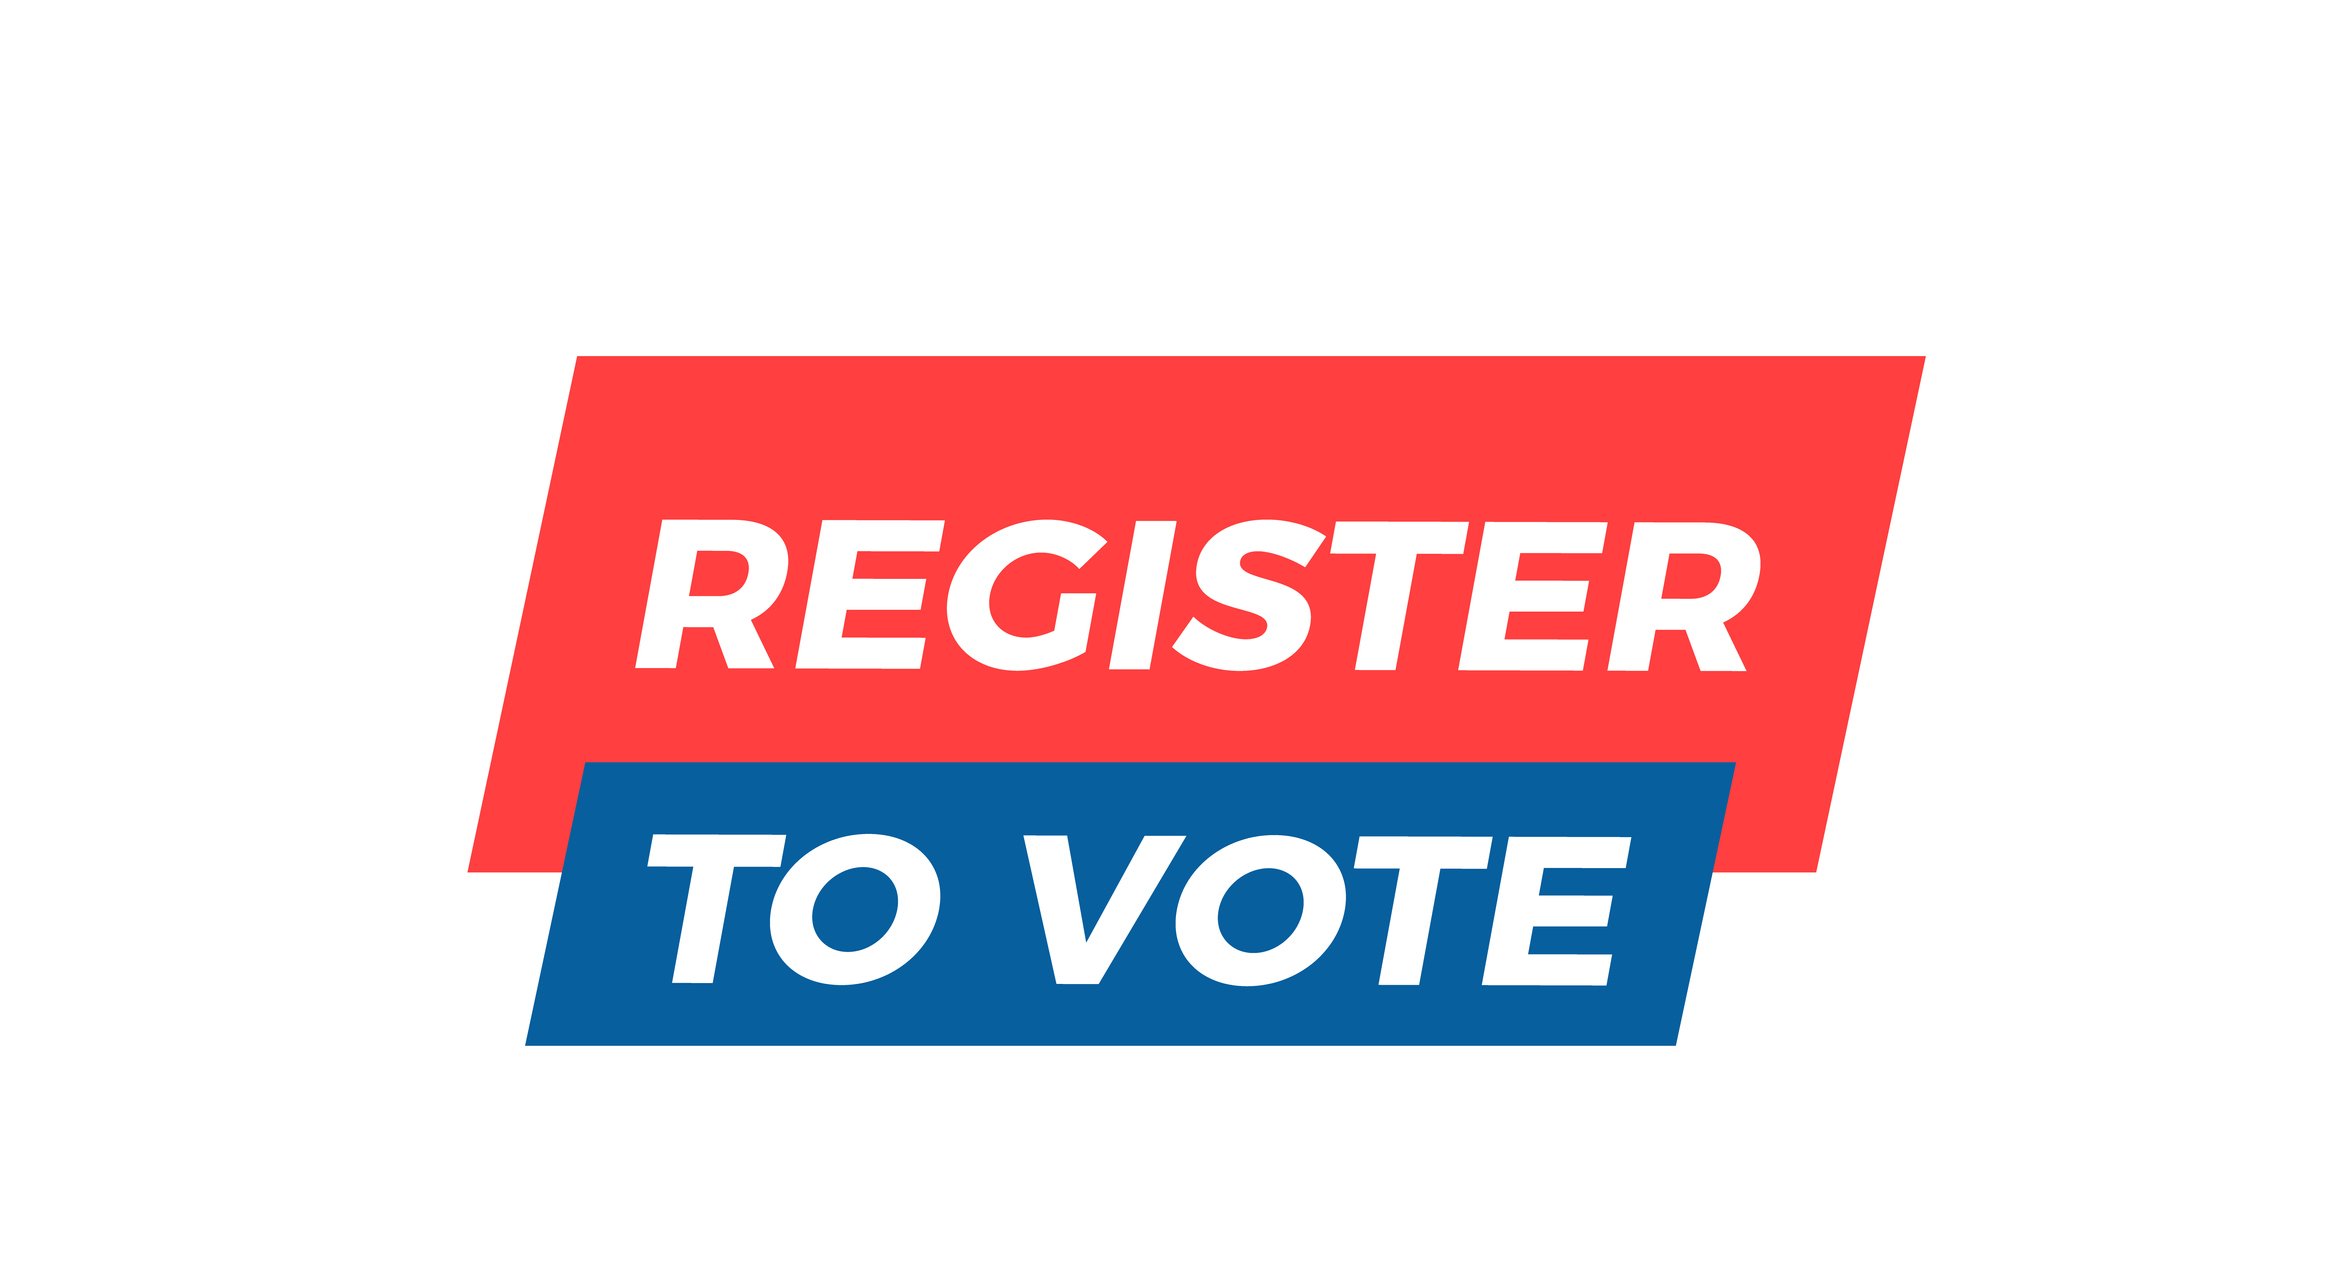 September 24 is National Voter Registration Day